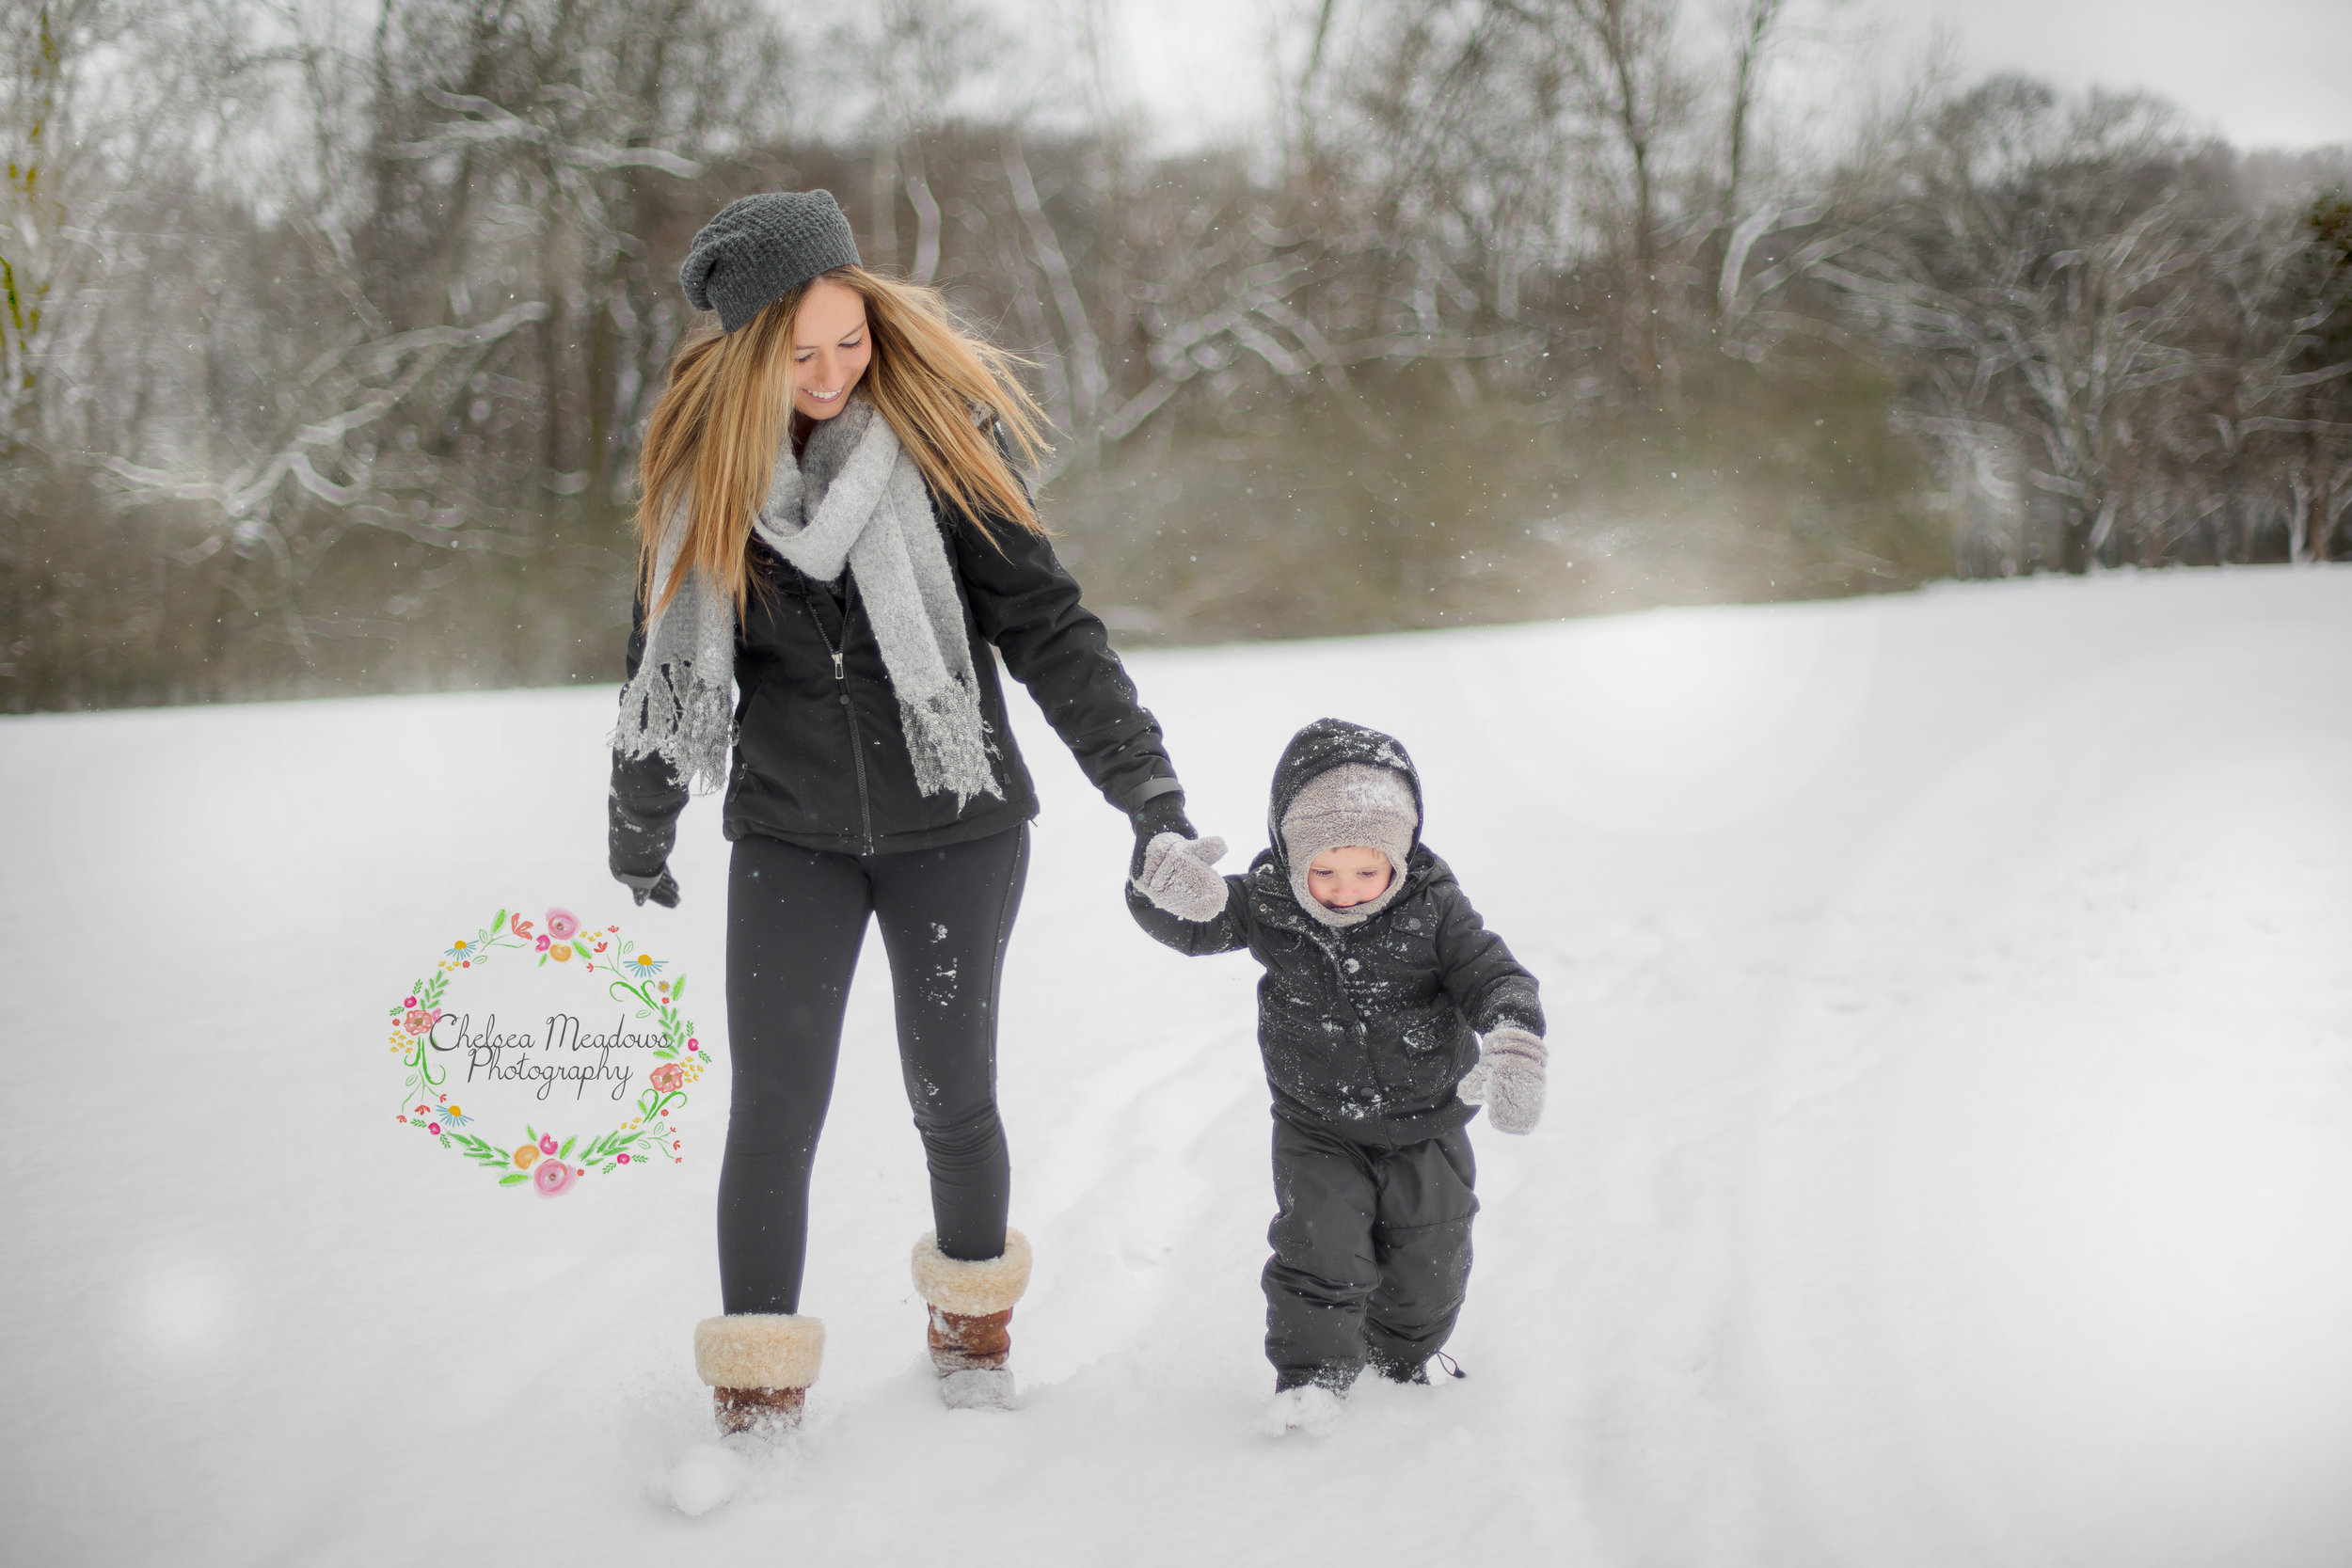 Ryder Snow Day 2018 - Nashville Family Photographer - Chelsea Meadows Photography (10)_edited-1.jpg